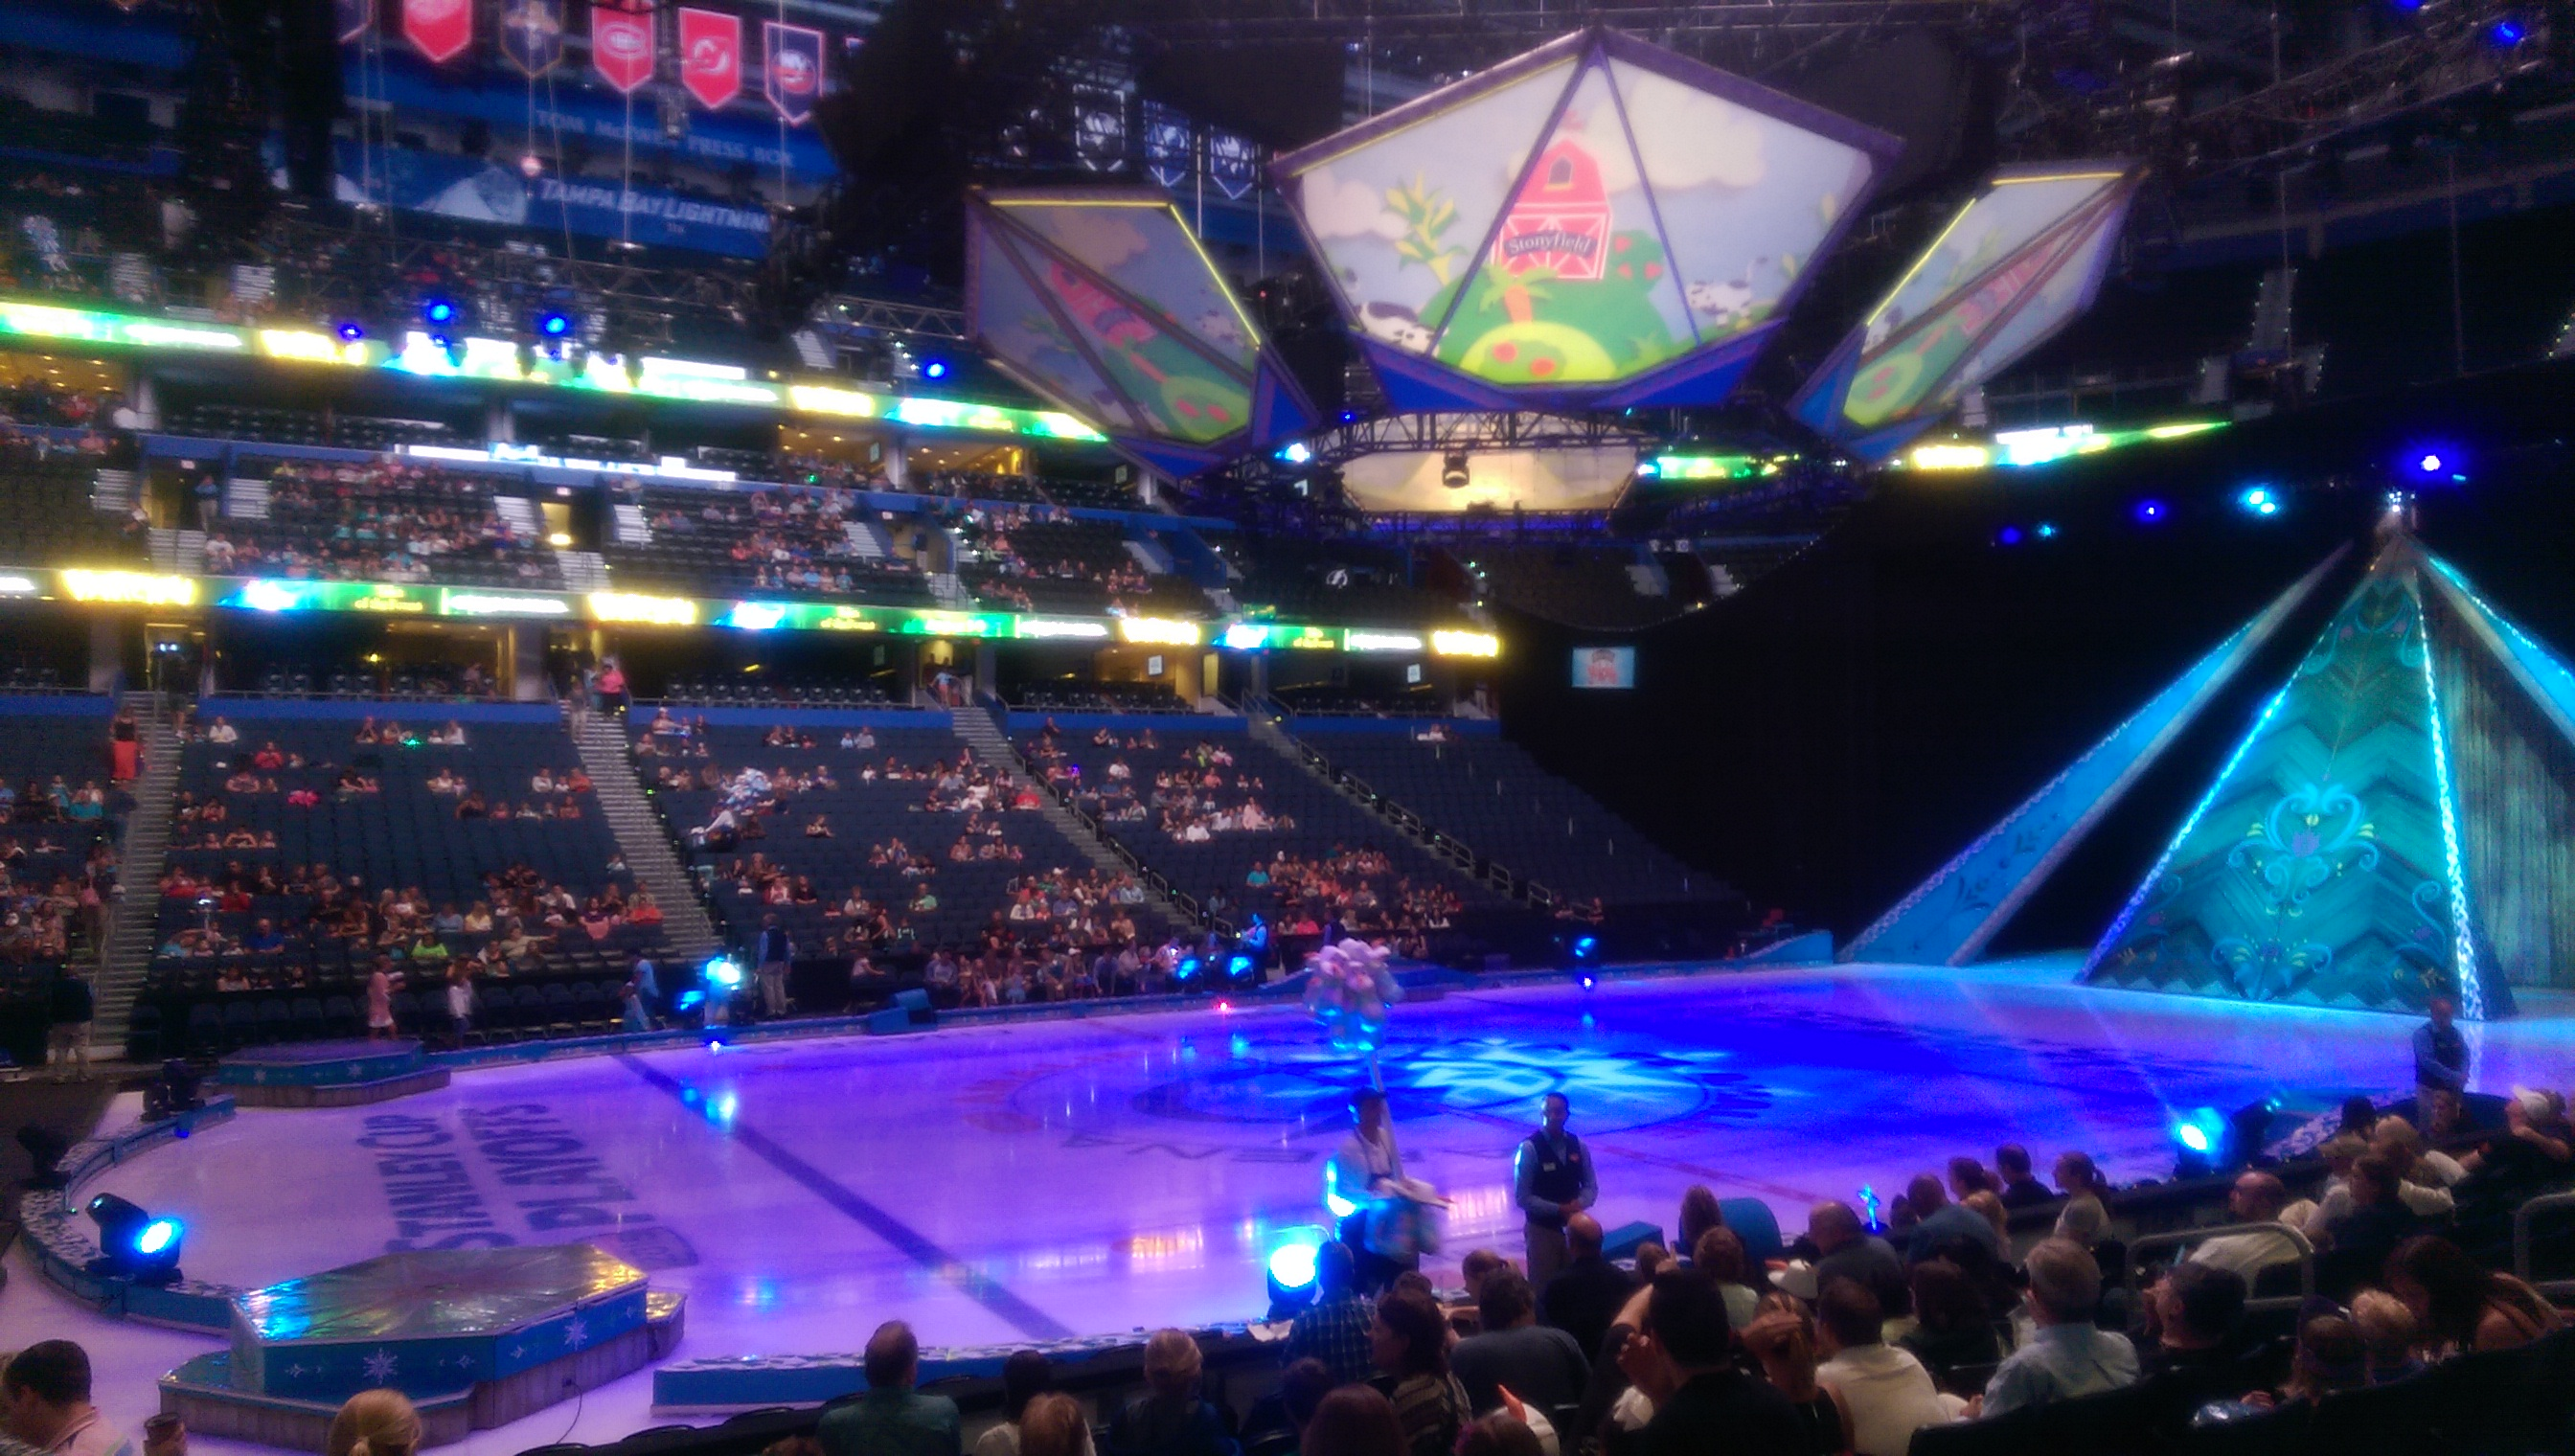 However After Thursday Eveningu0027s Opening Performance Of Disney On Ice:  Frozen, I Believe We May Not Be Alone. For The First Time In My Disney On  Ice Mommy ...